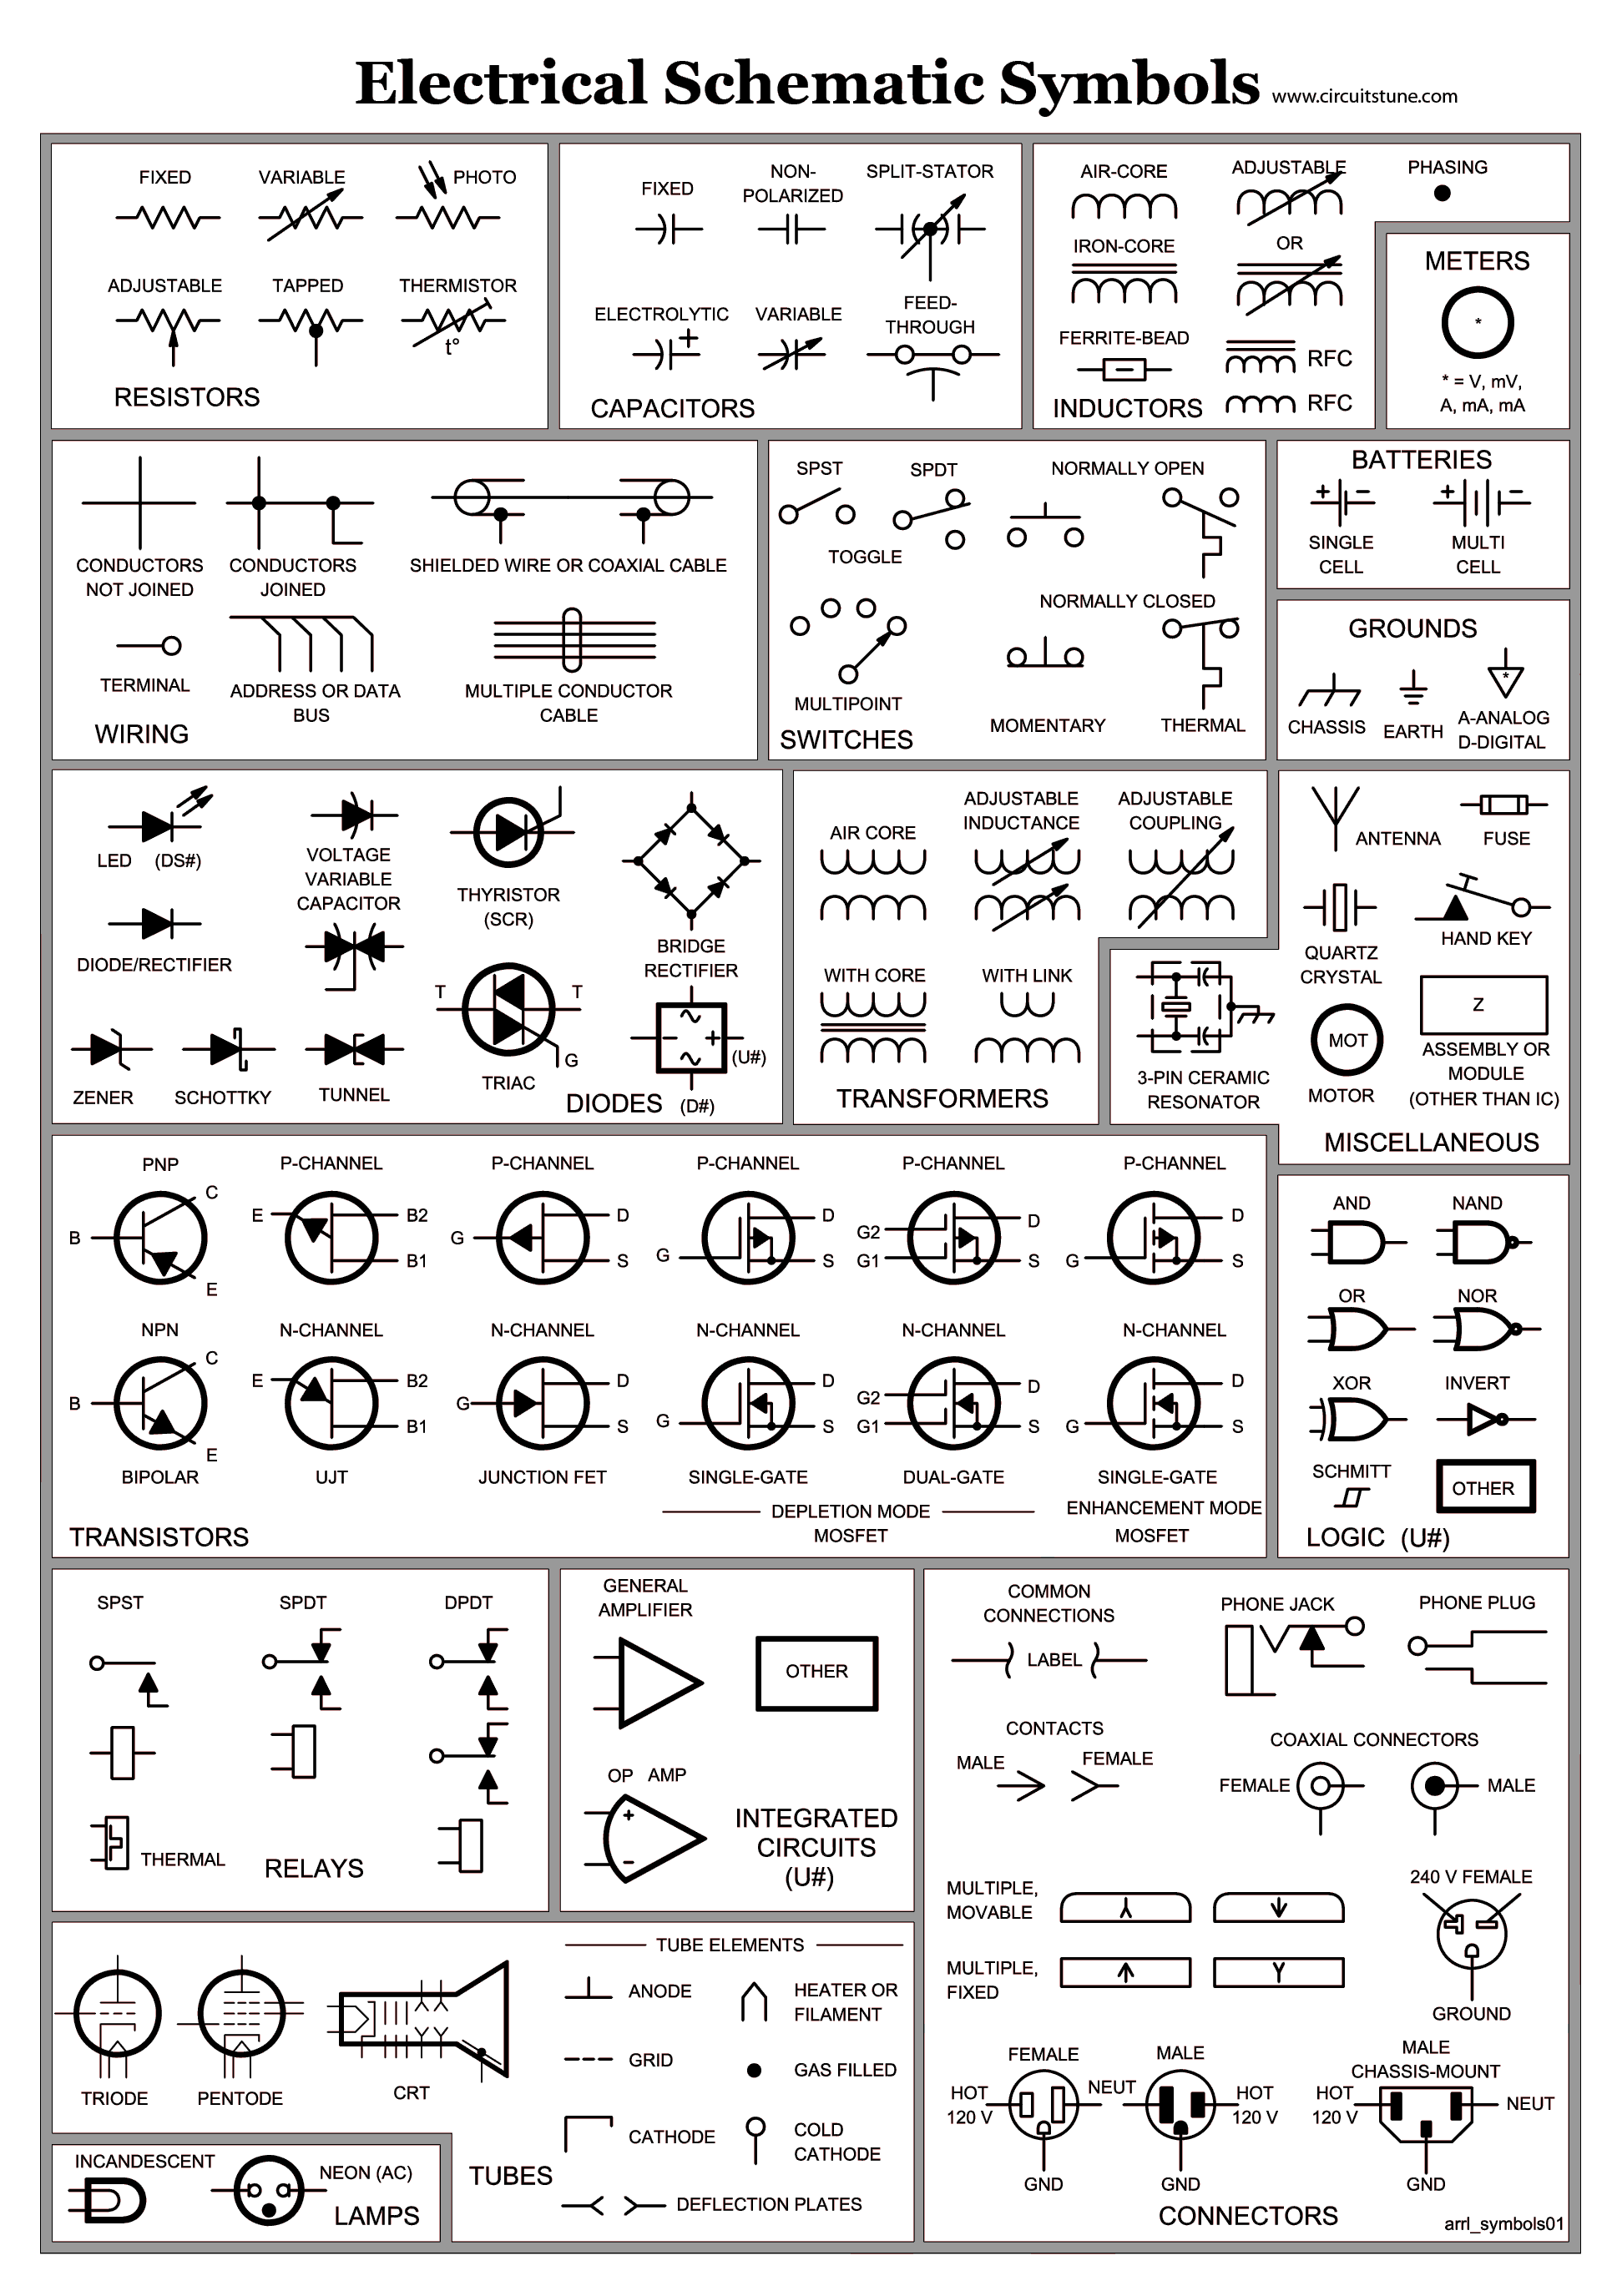 electrical schematic symbols wire diagram symbols automotive wiring rh pinterest com electrical diagram symbols relay electrical diagram symbols for hvac